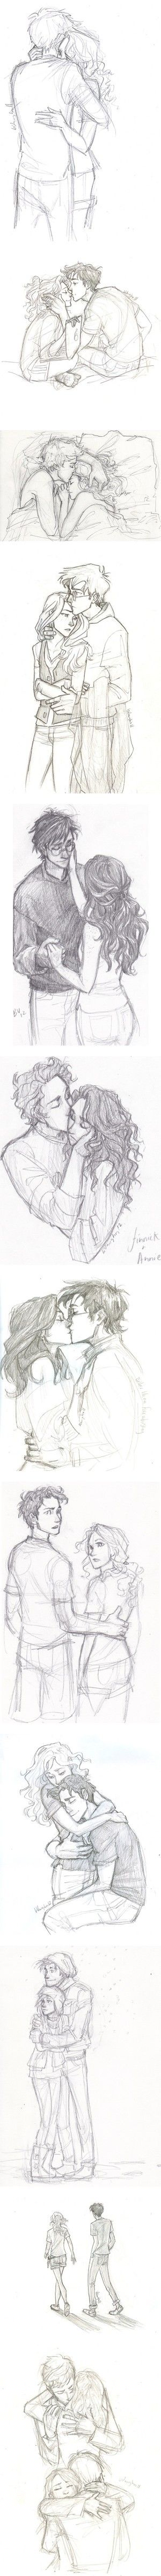 Drawings by Burdge :) by singmesoftlytosleep on Polyvore featuring fillers, drawings, doodles, couples, sketches, text, quotes, saying, scribble and phrase